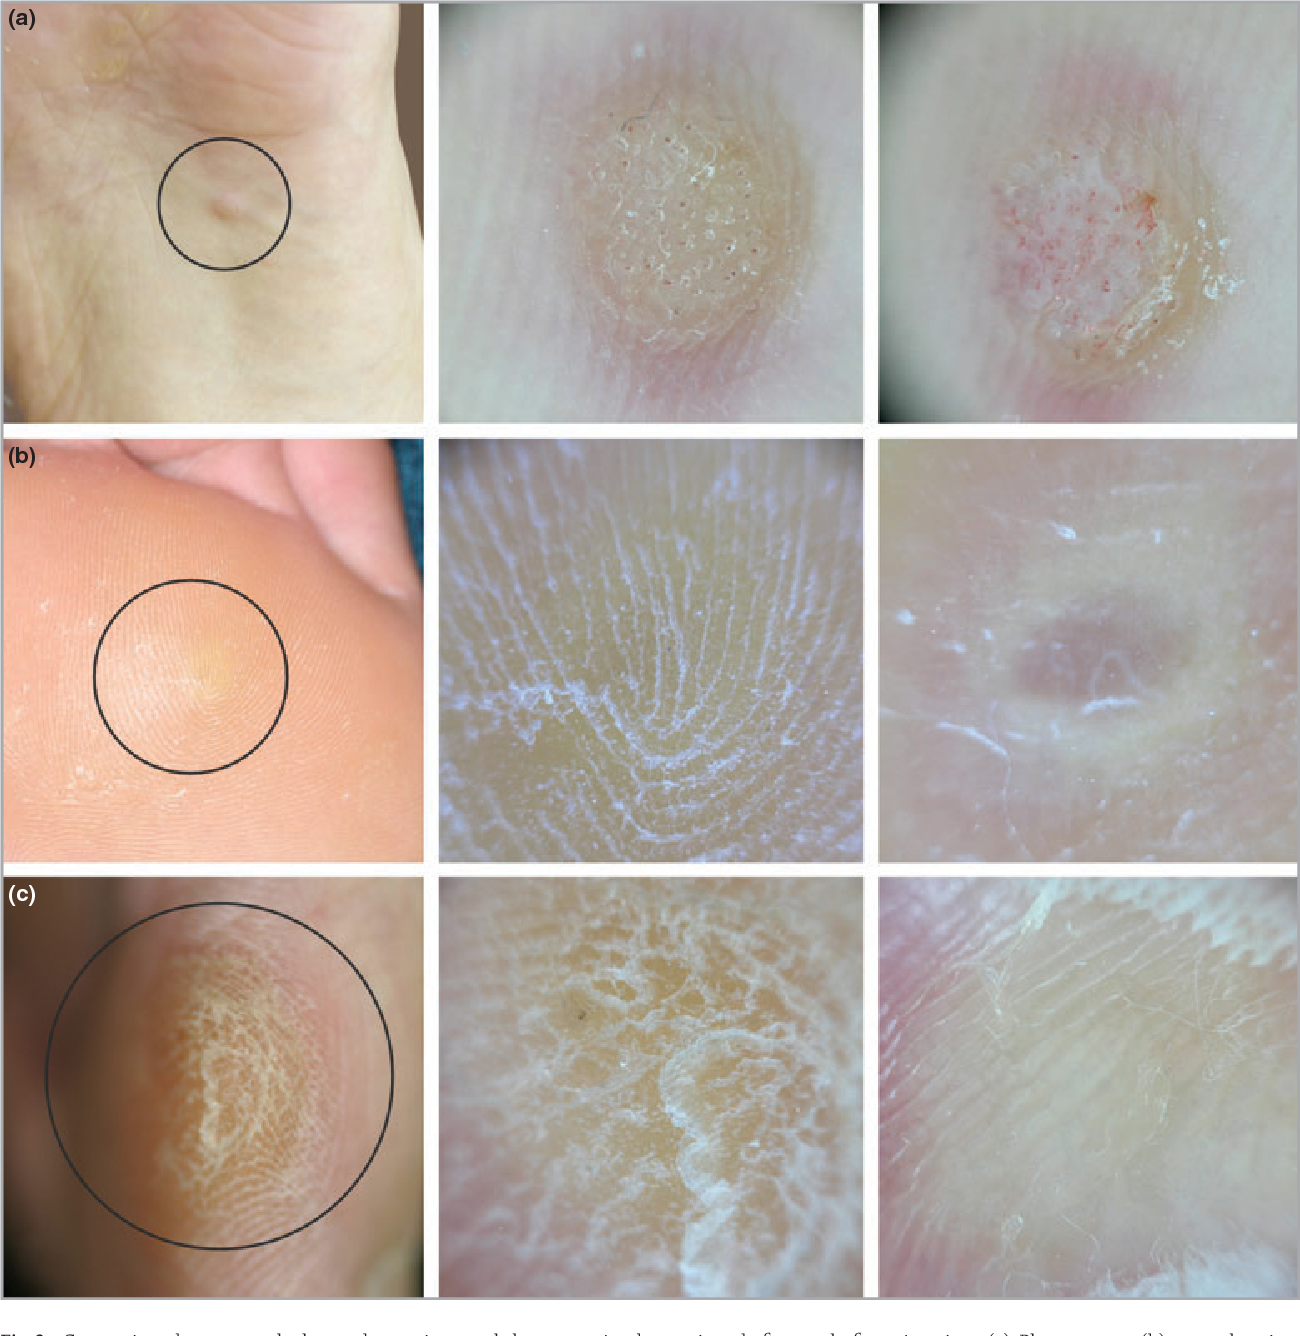 Figure 2 From Differential Diagnosis Of Plantar Wart From Corn Callus And Healed Wart With The Aid Of Dermoscopy Semantic Scholar